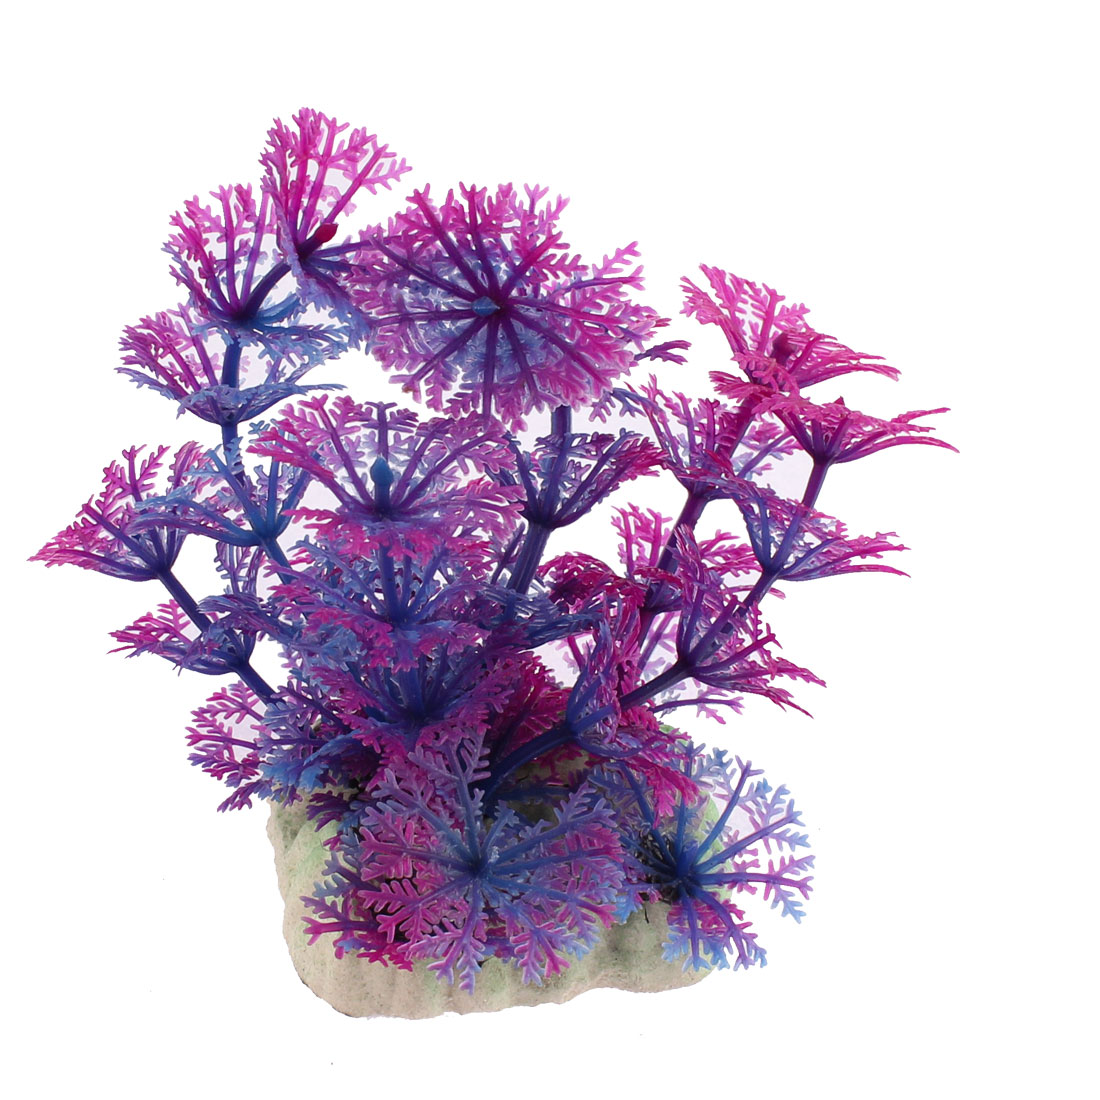 Aquarium Plastic Simulated Grass Plant Decor Purple 9cm Height